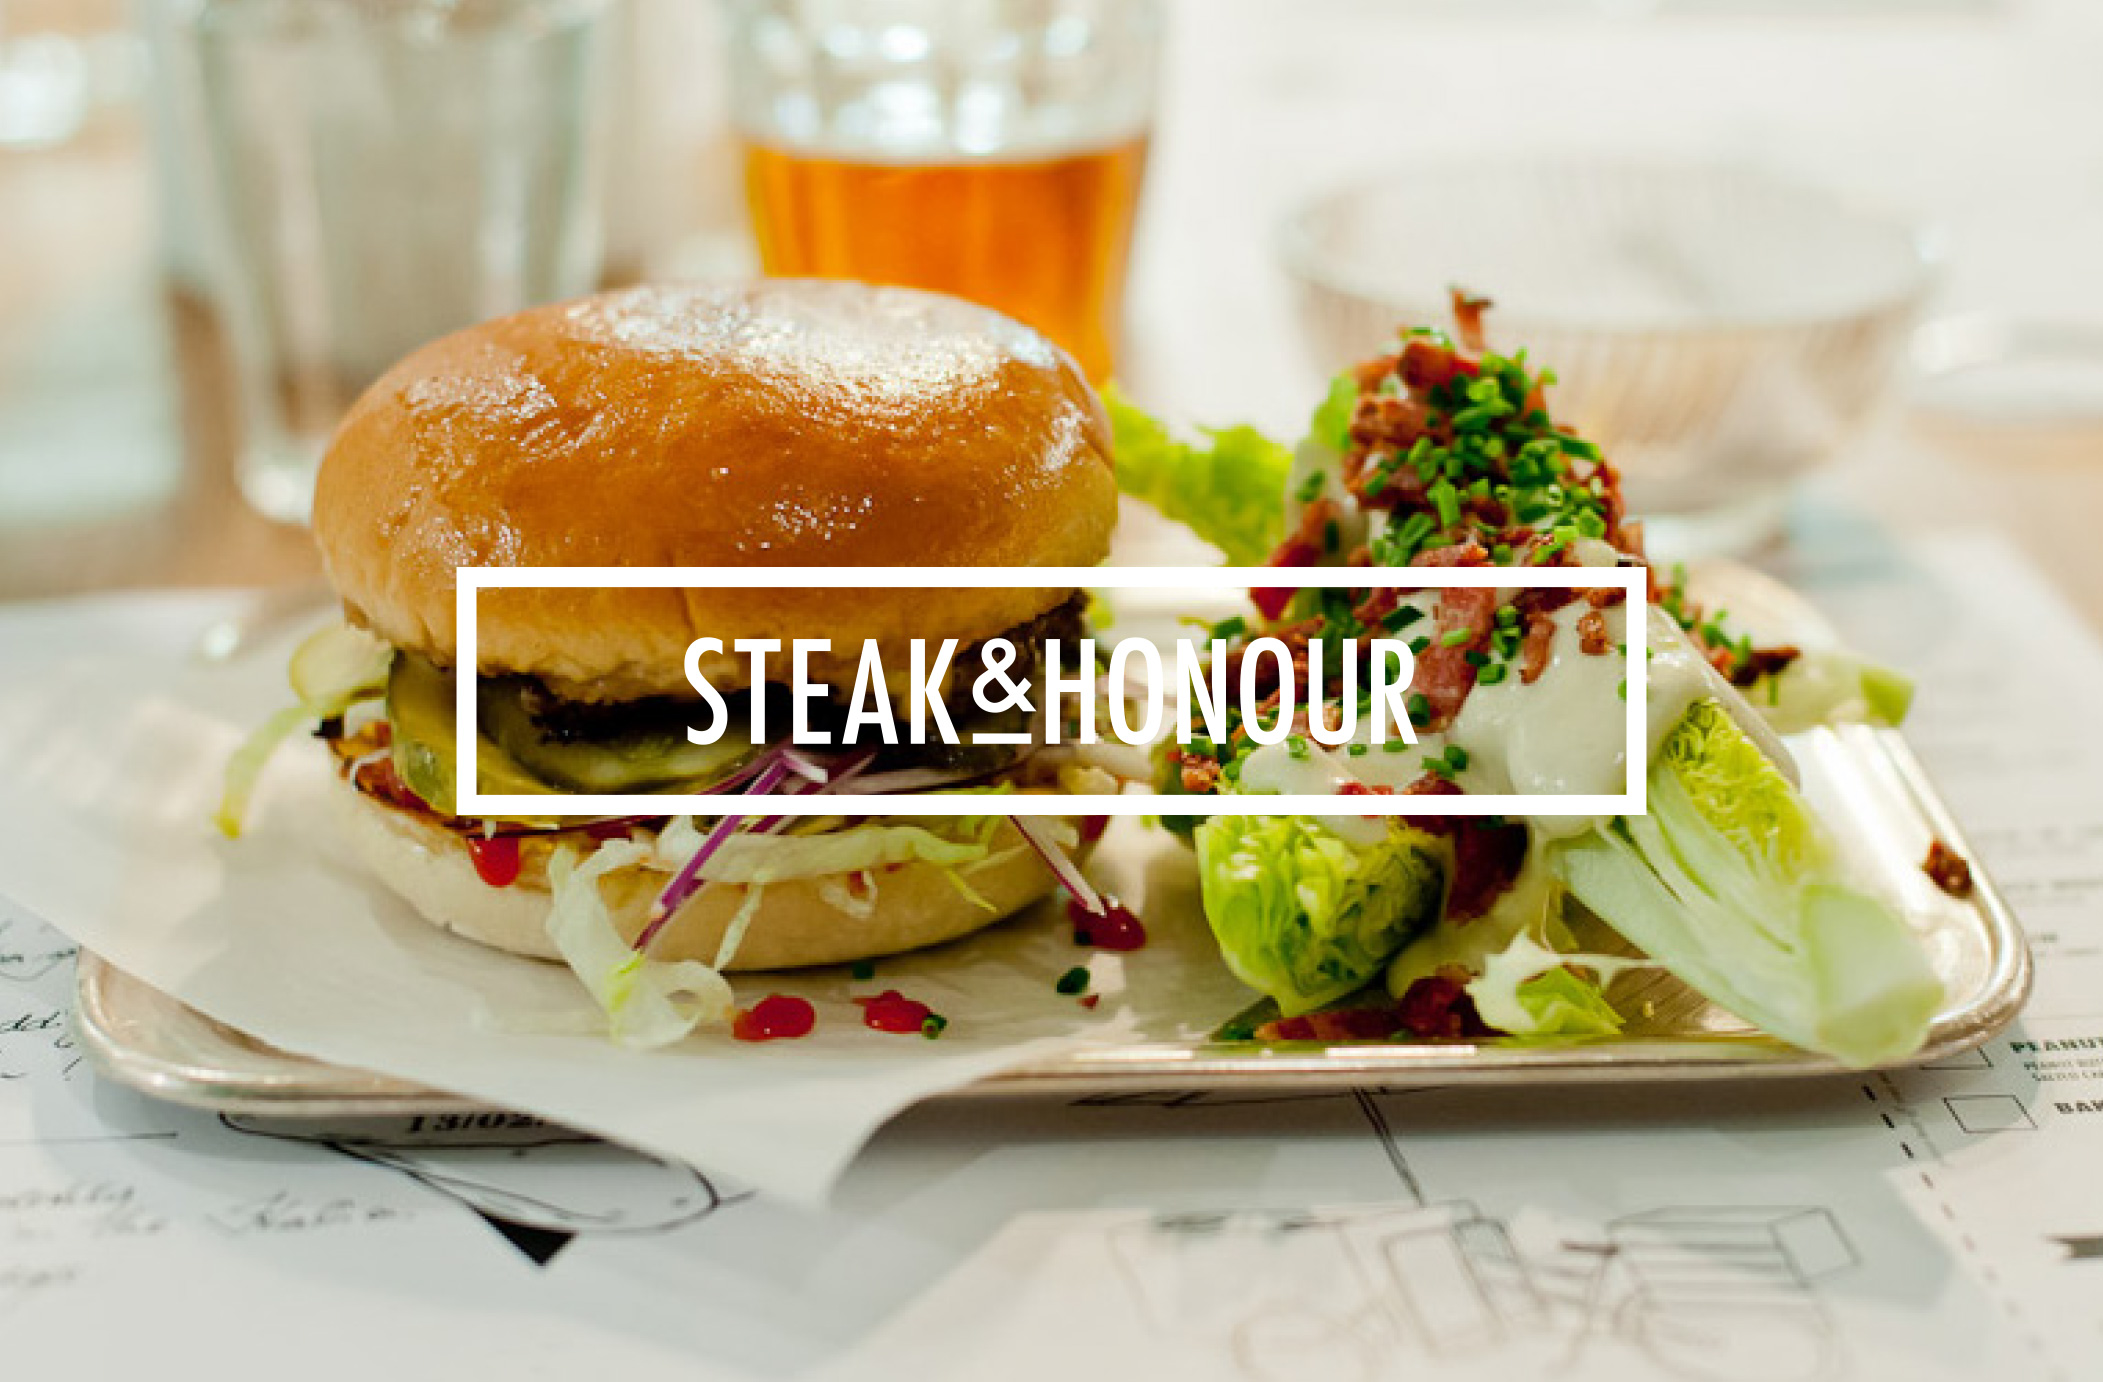 burger and salad on a plate with white 'STEAK & HONOUR' written block in front